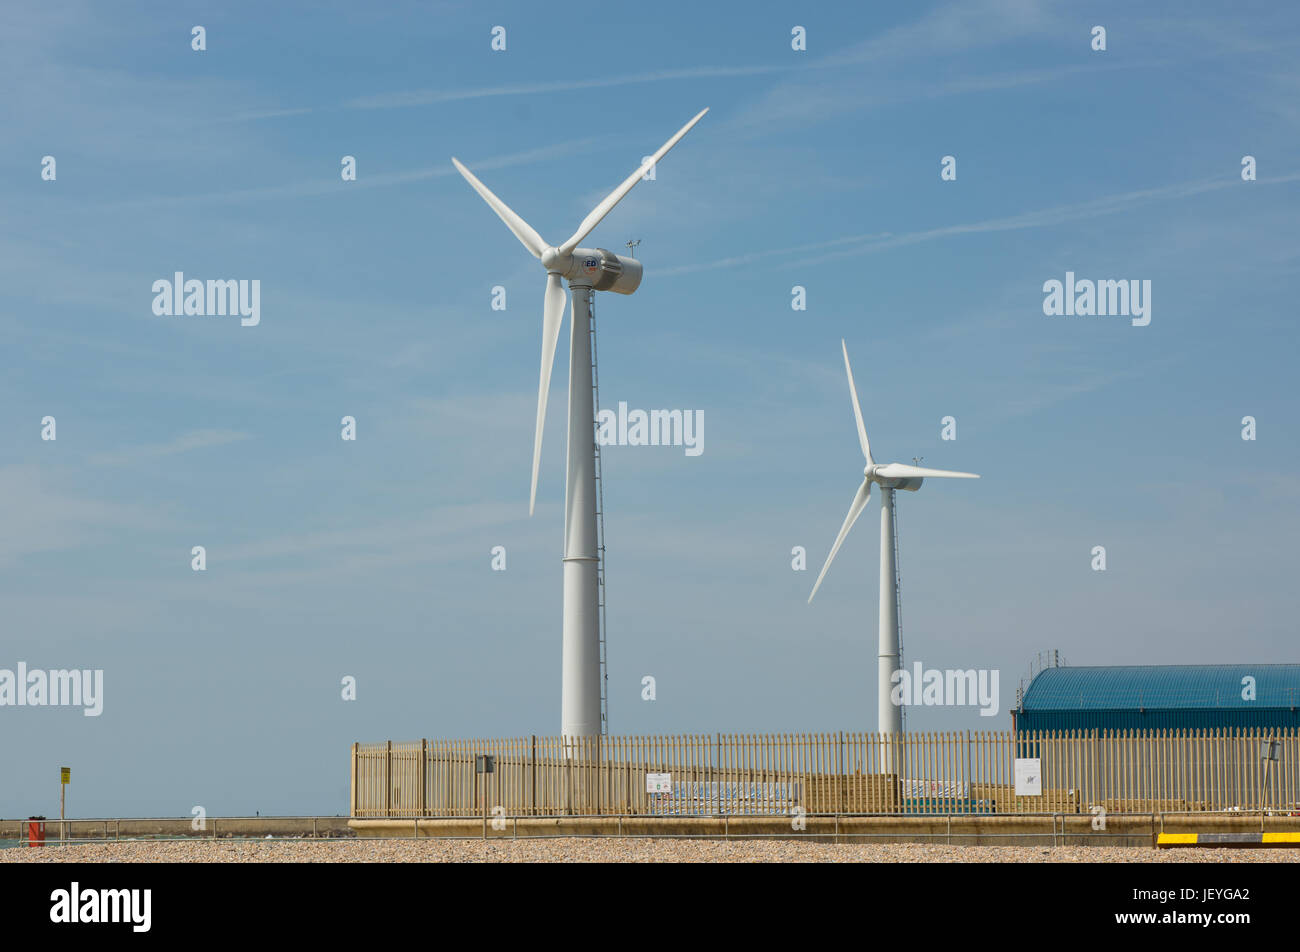 Wind turbine electricity generators on the harbour wall at Shoreham Port, West Sussex, England Stock Photo